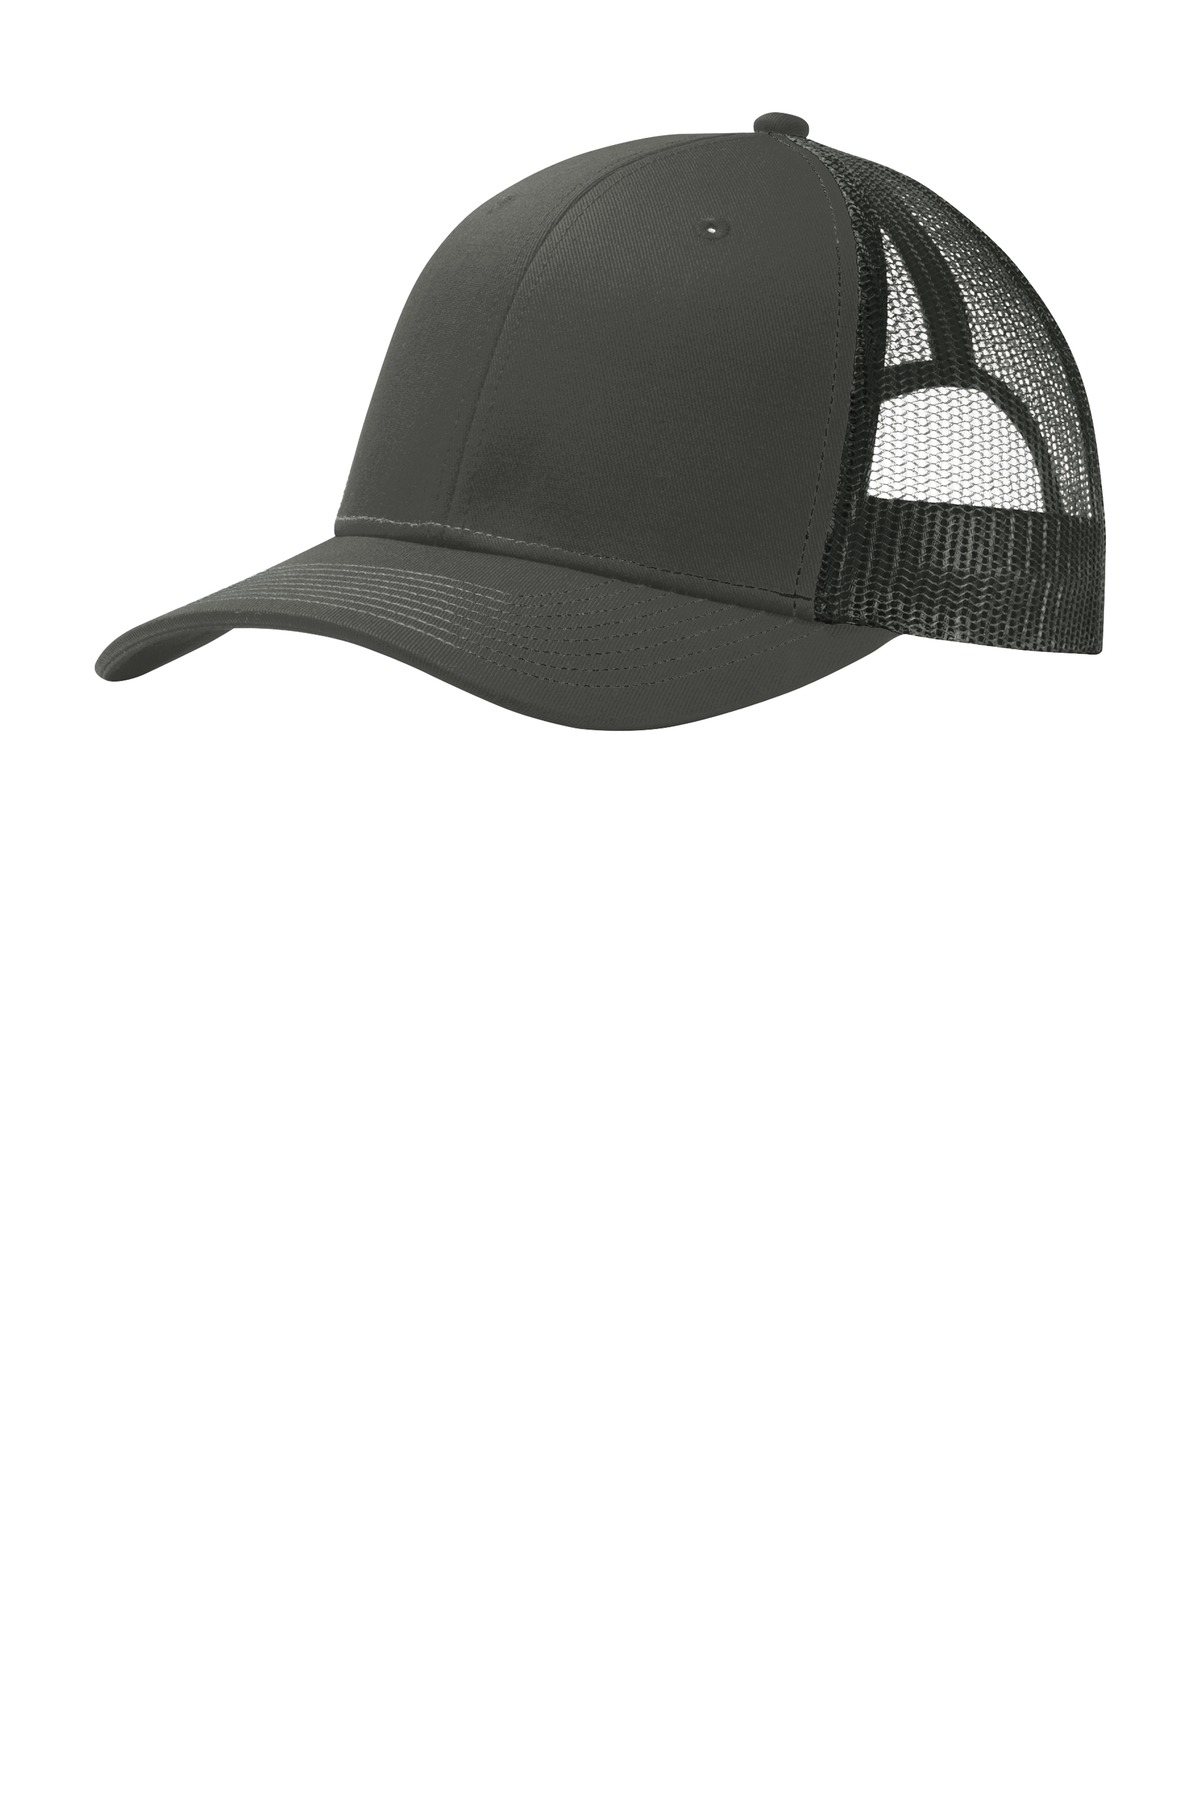 Port Authority ®  Snapback Trucker Cap. C112 - Grey Steel